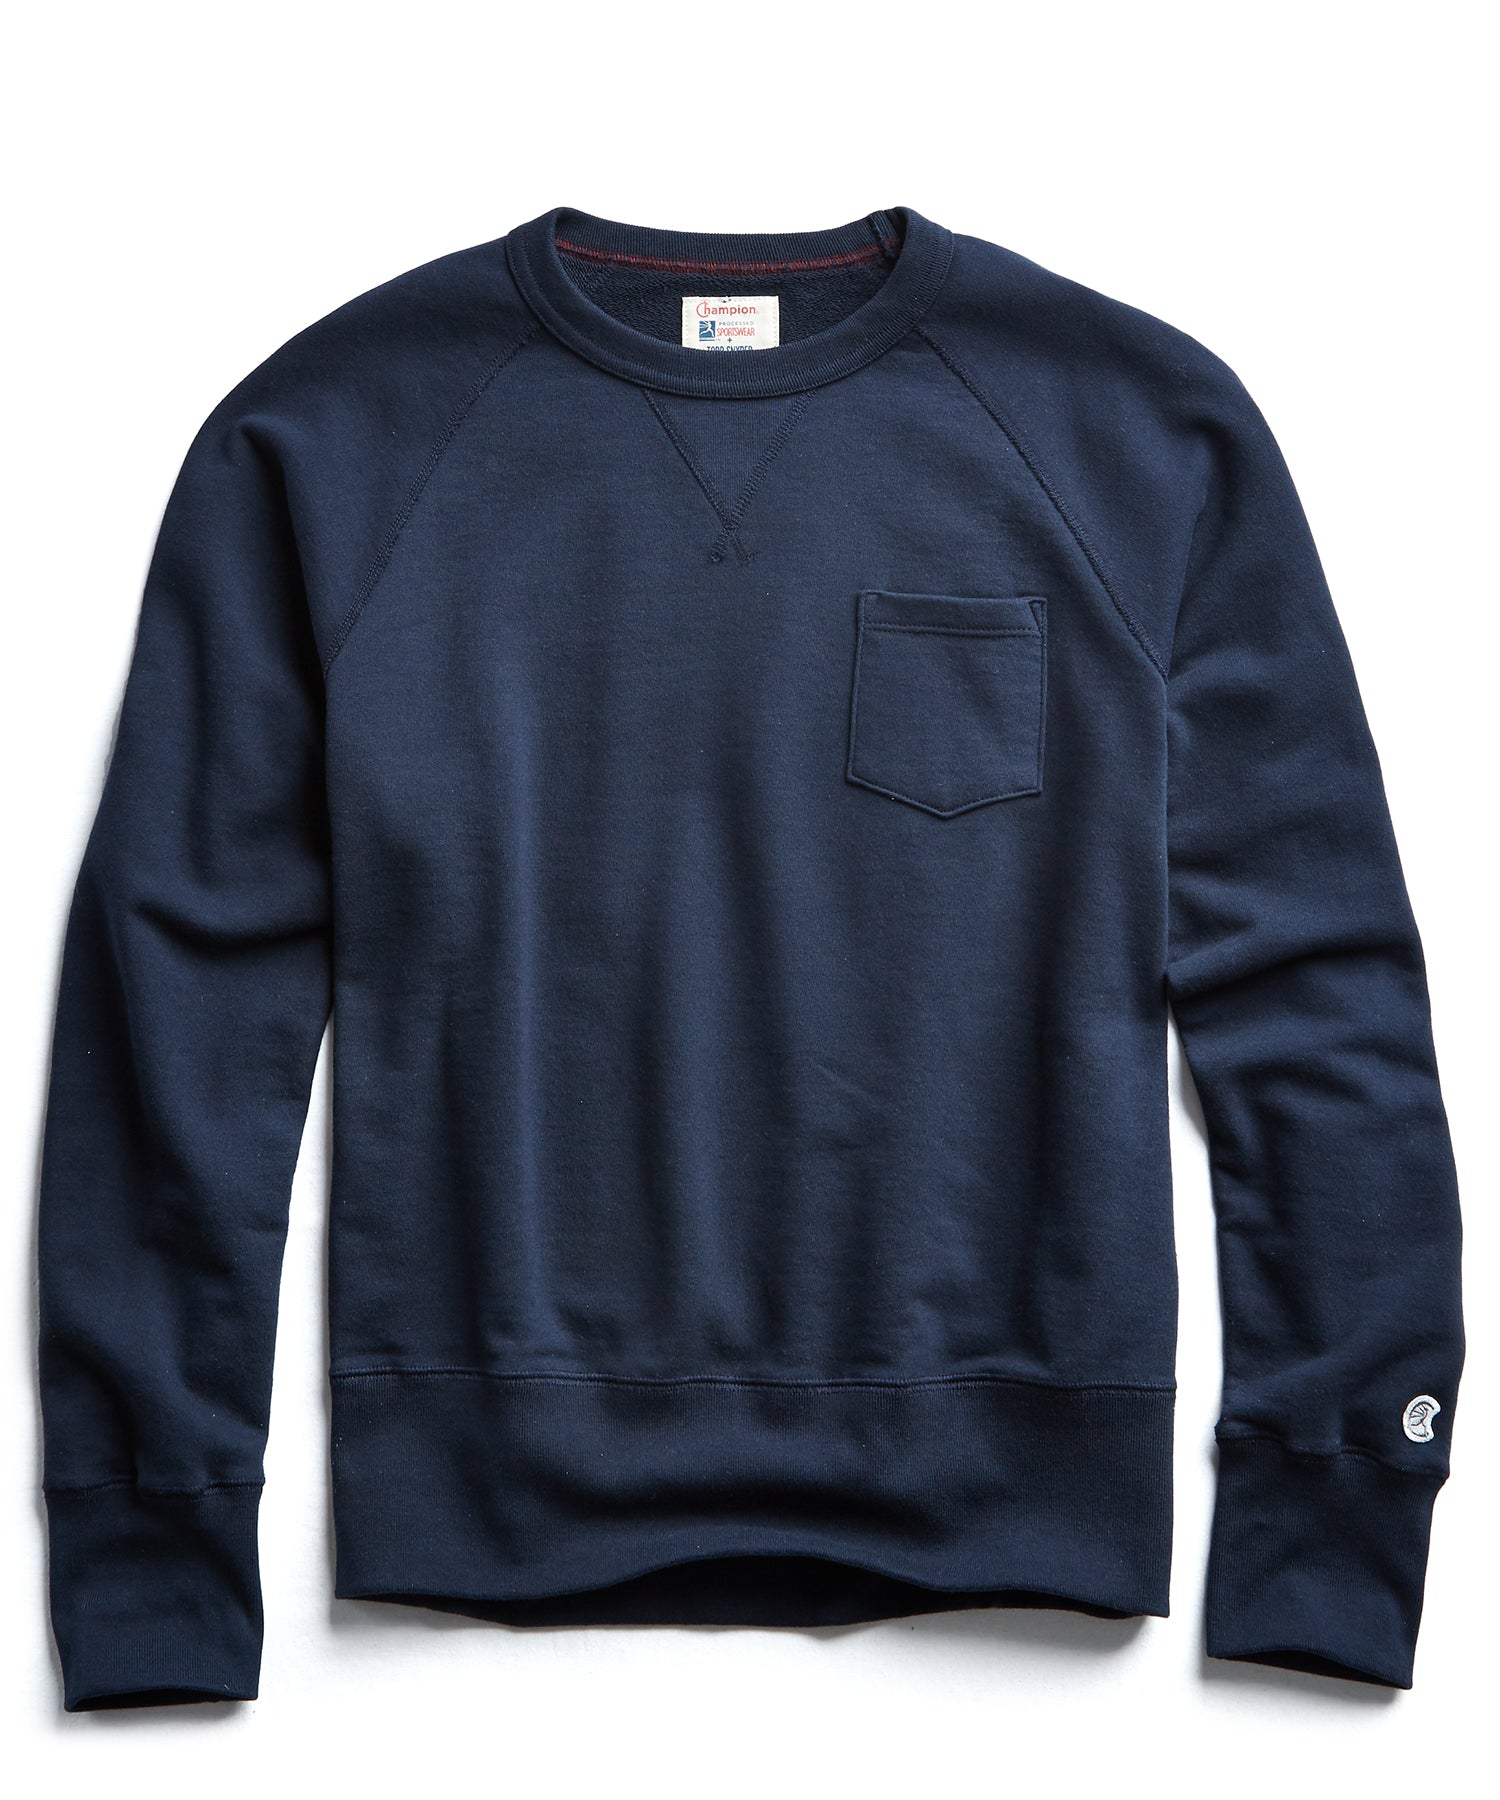 Fleece Pocket Sweatshirt in Navy